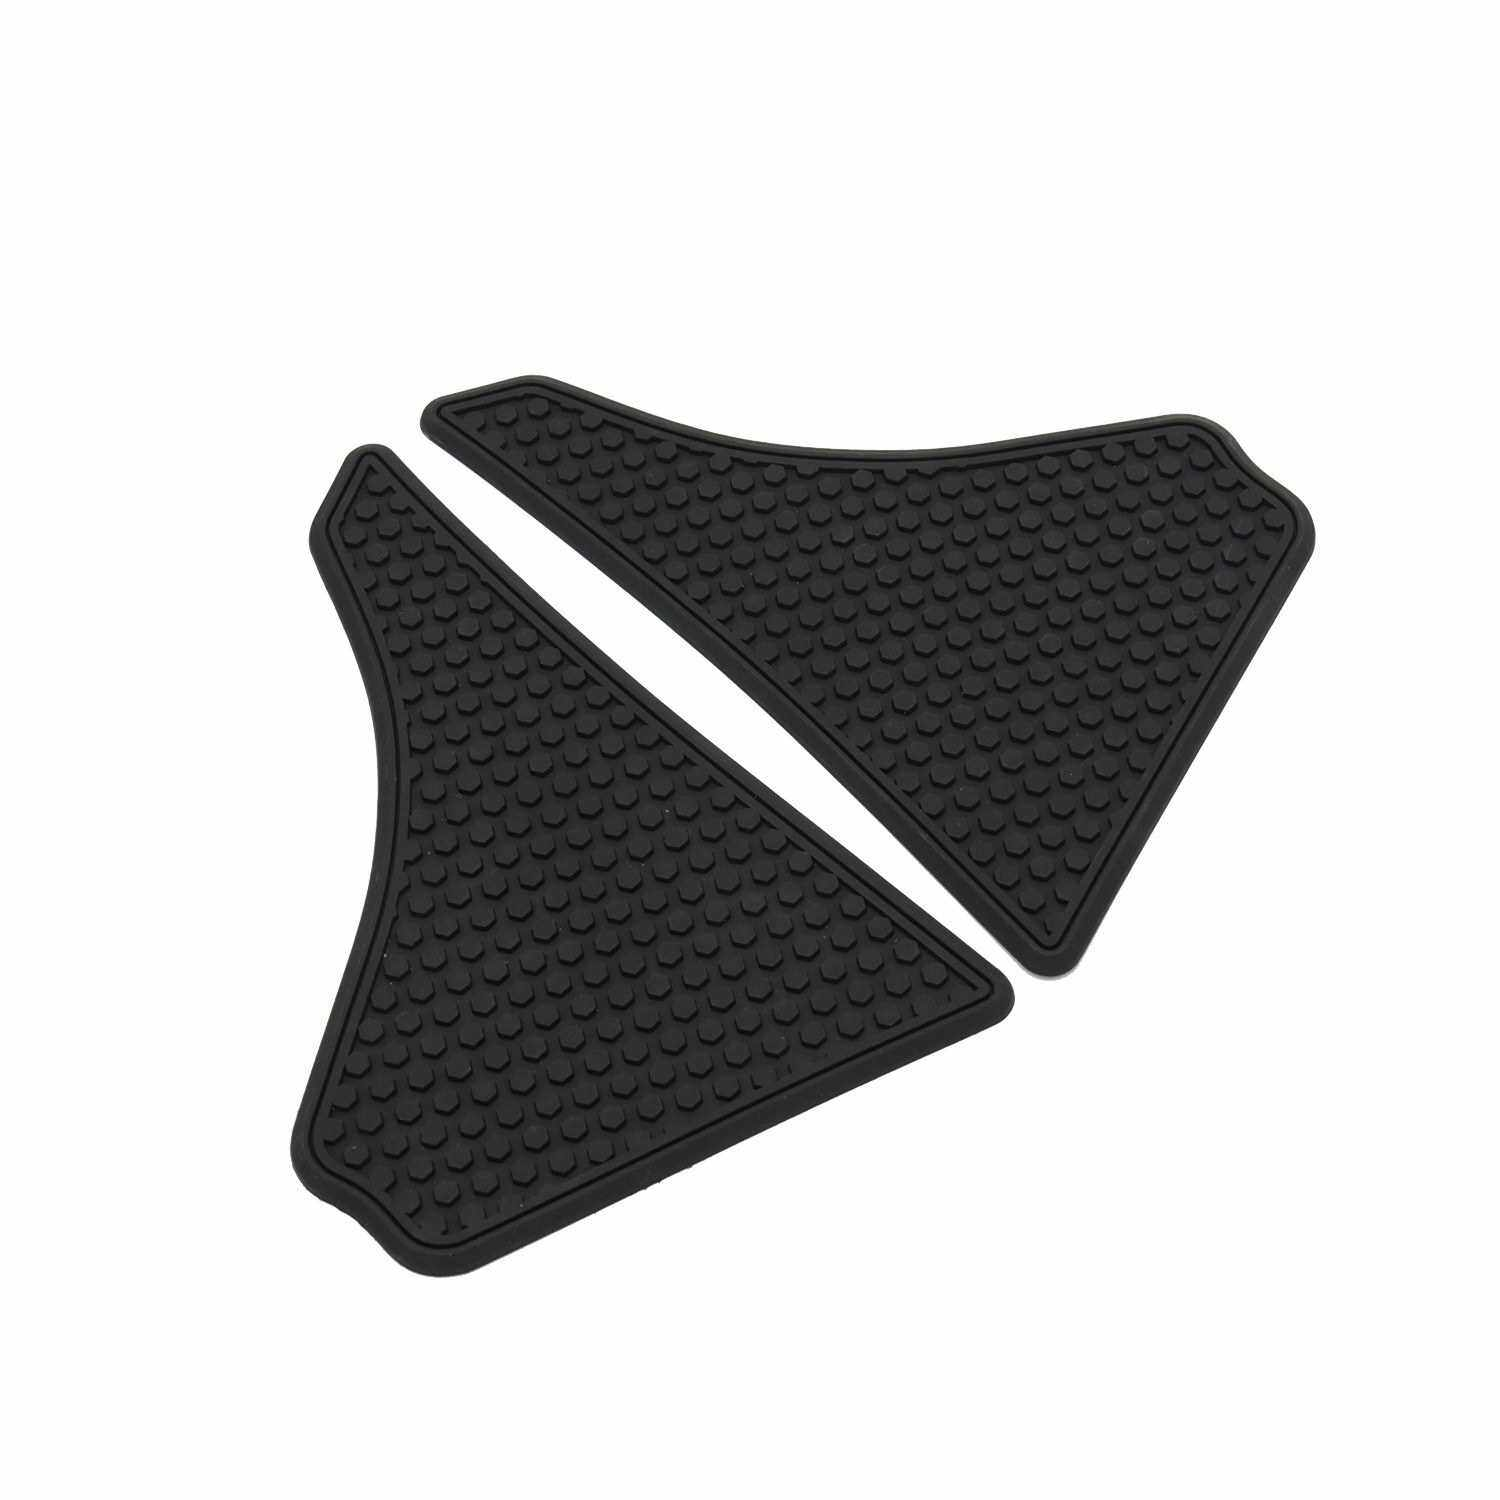 Motorcycle Sticker Gas Fuel Oil Tank Pad Protector Decal replacement for HONDA CRF 250X CRF450R/RWE/X/L (Black)